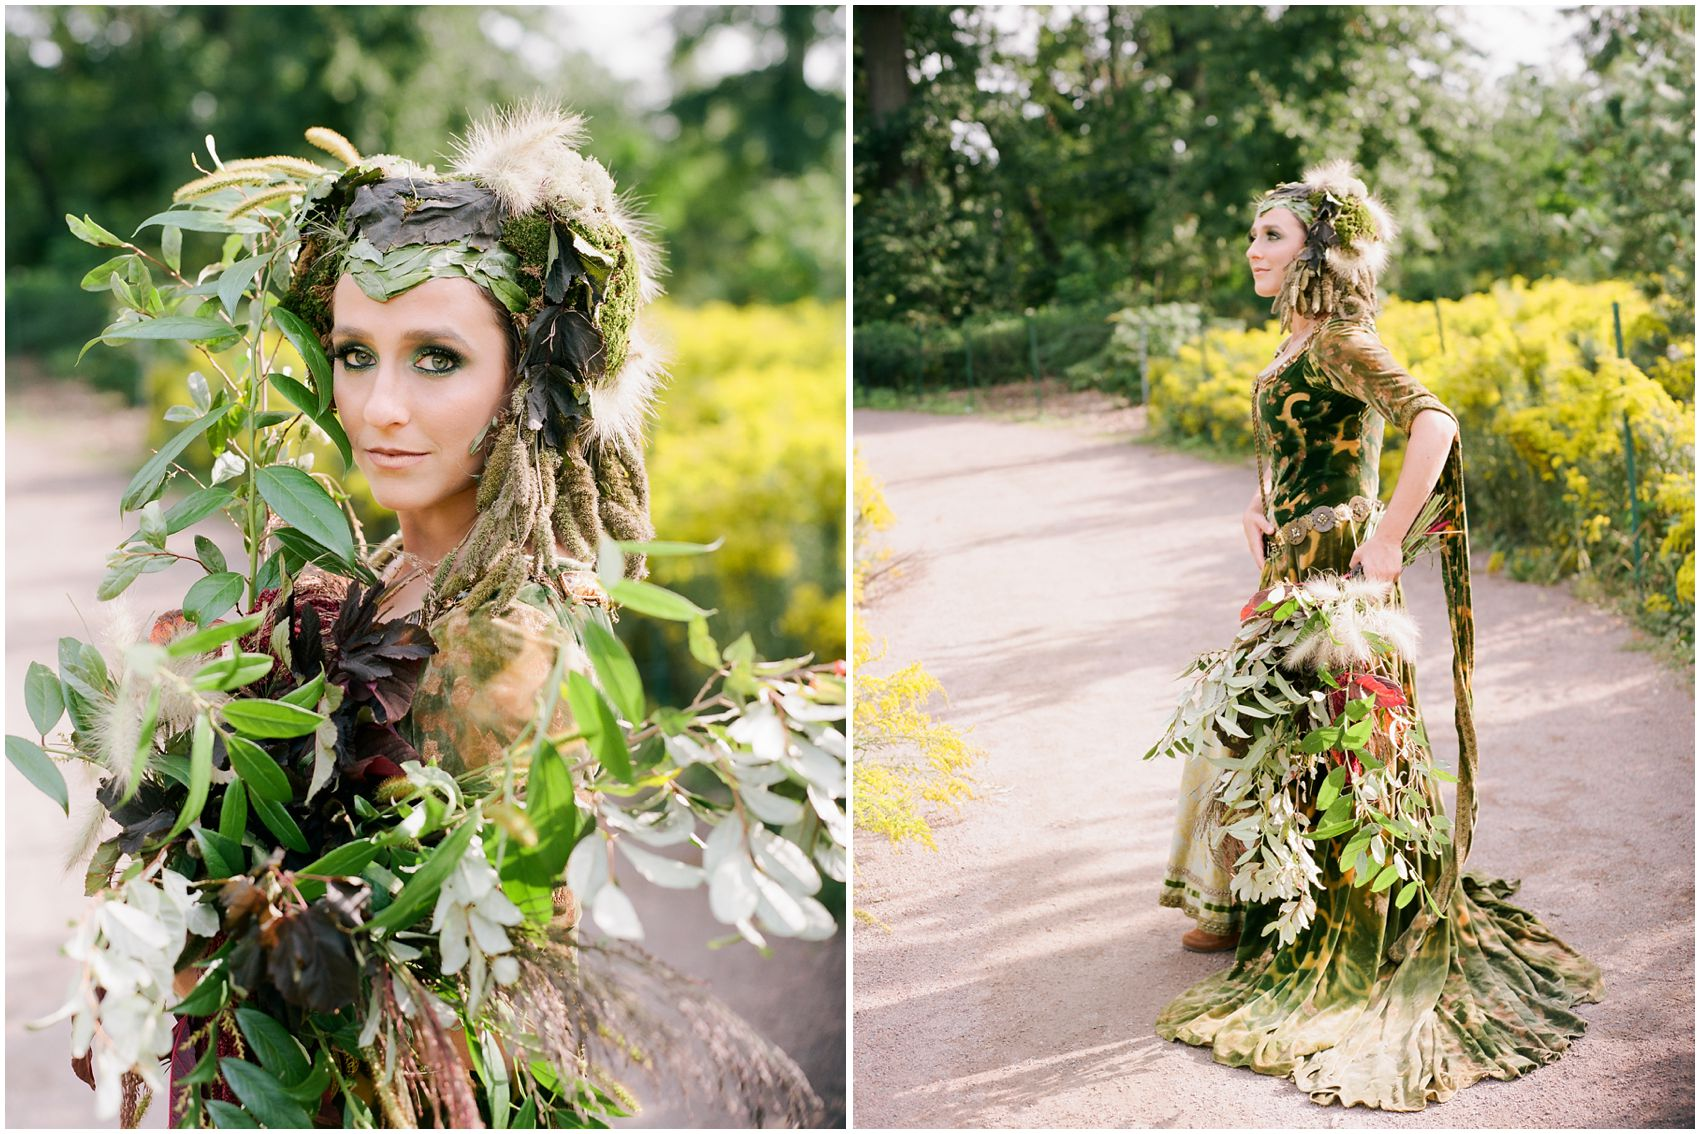 dream shoot of nature goddess in prospect park